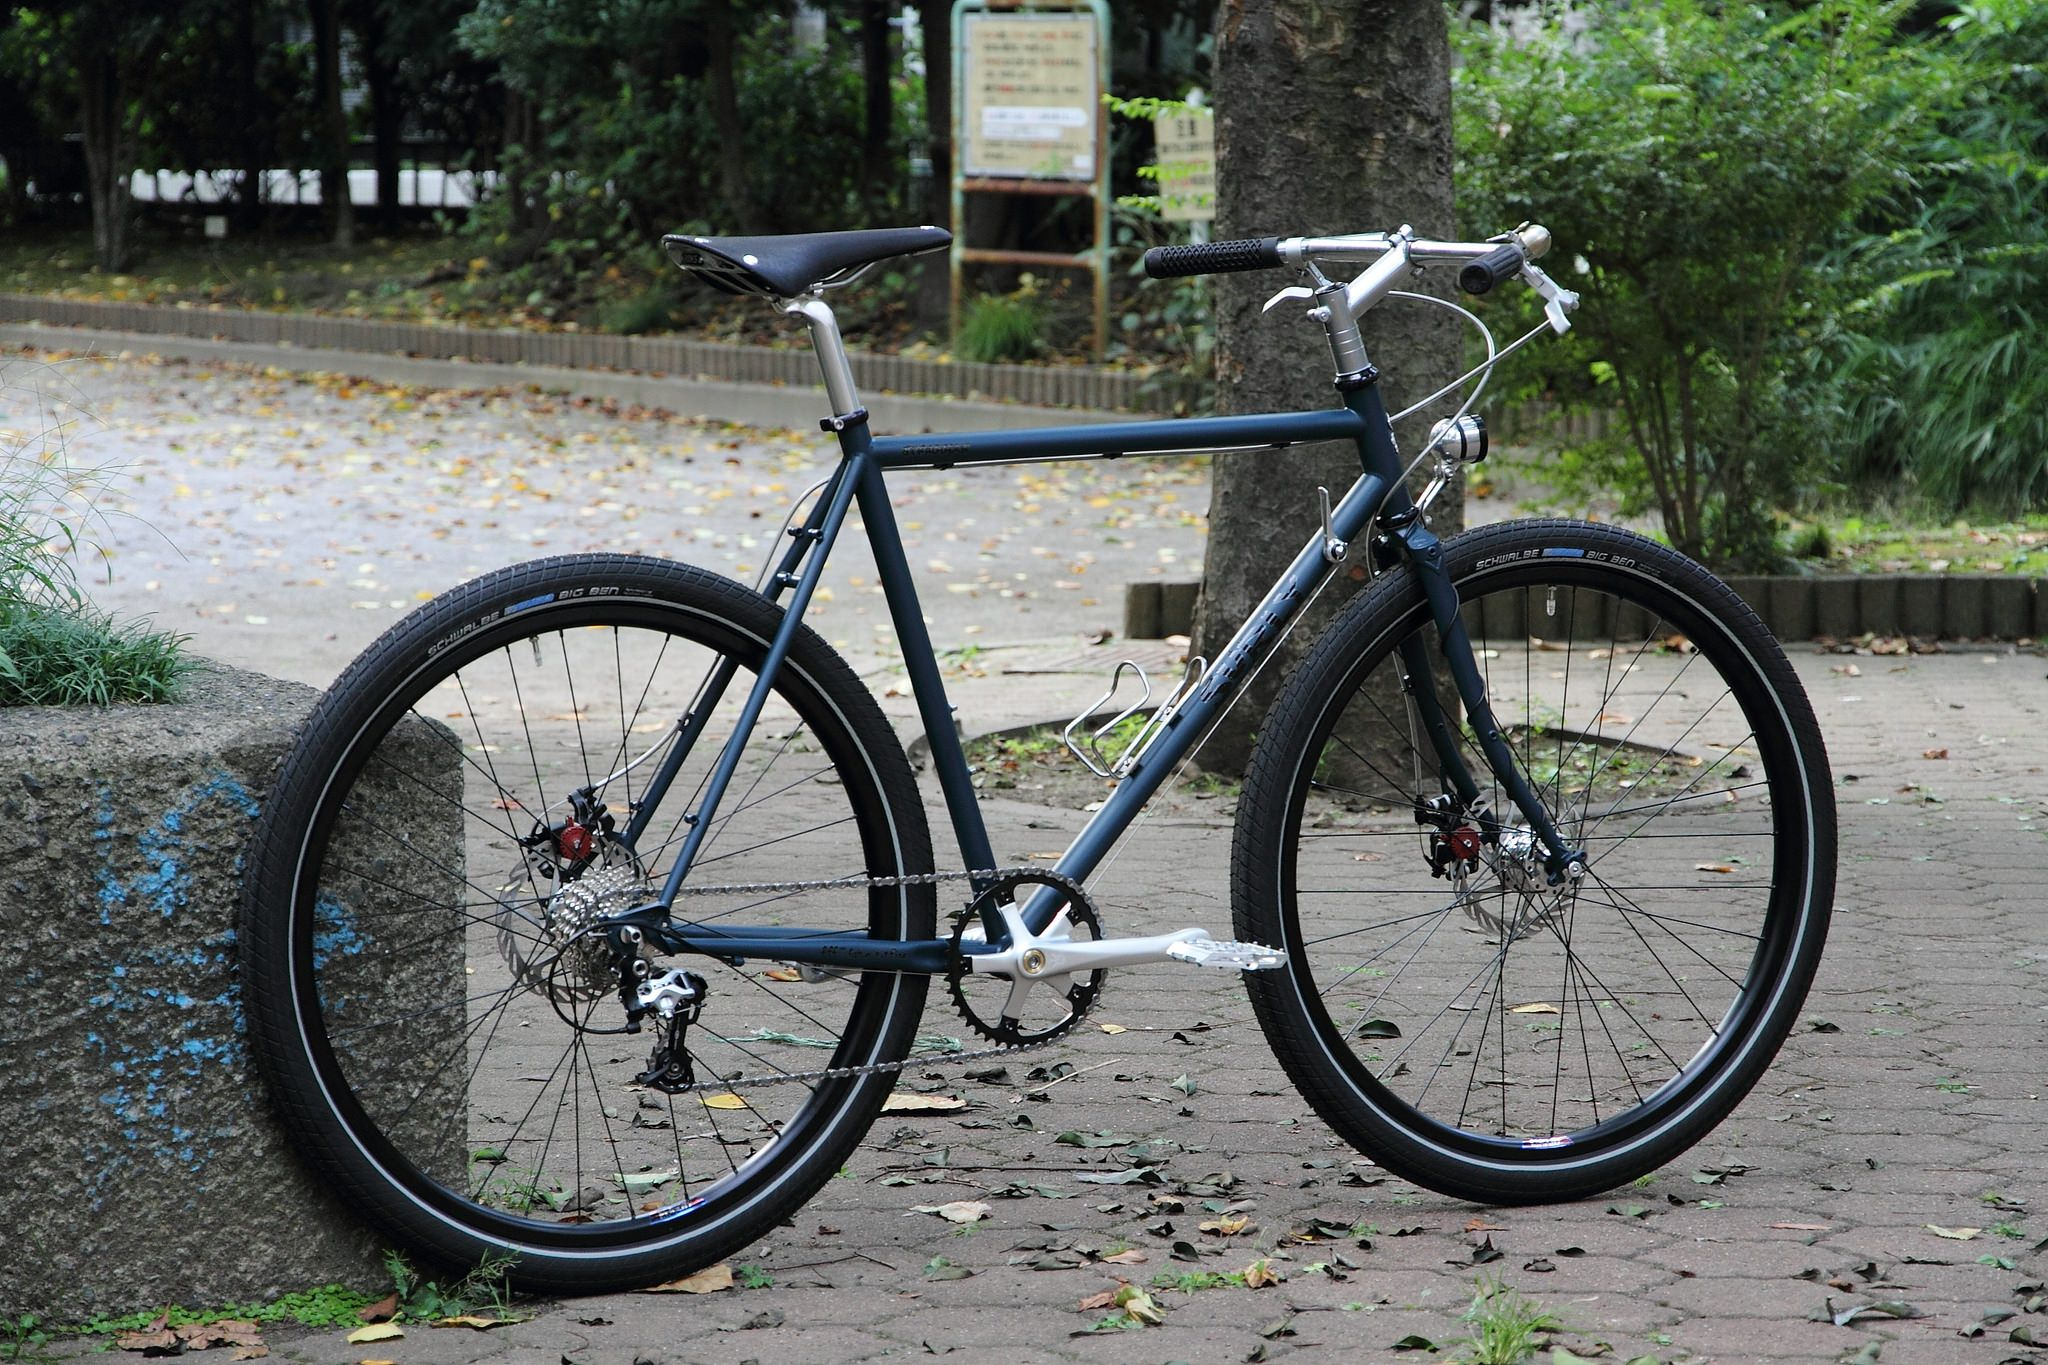 d45832f4a50 SURLY* straggler | The free rides | Surly straggler, Touring bike ...